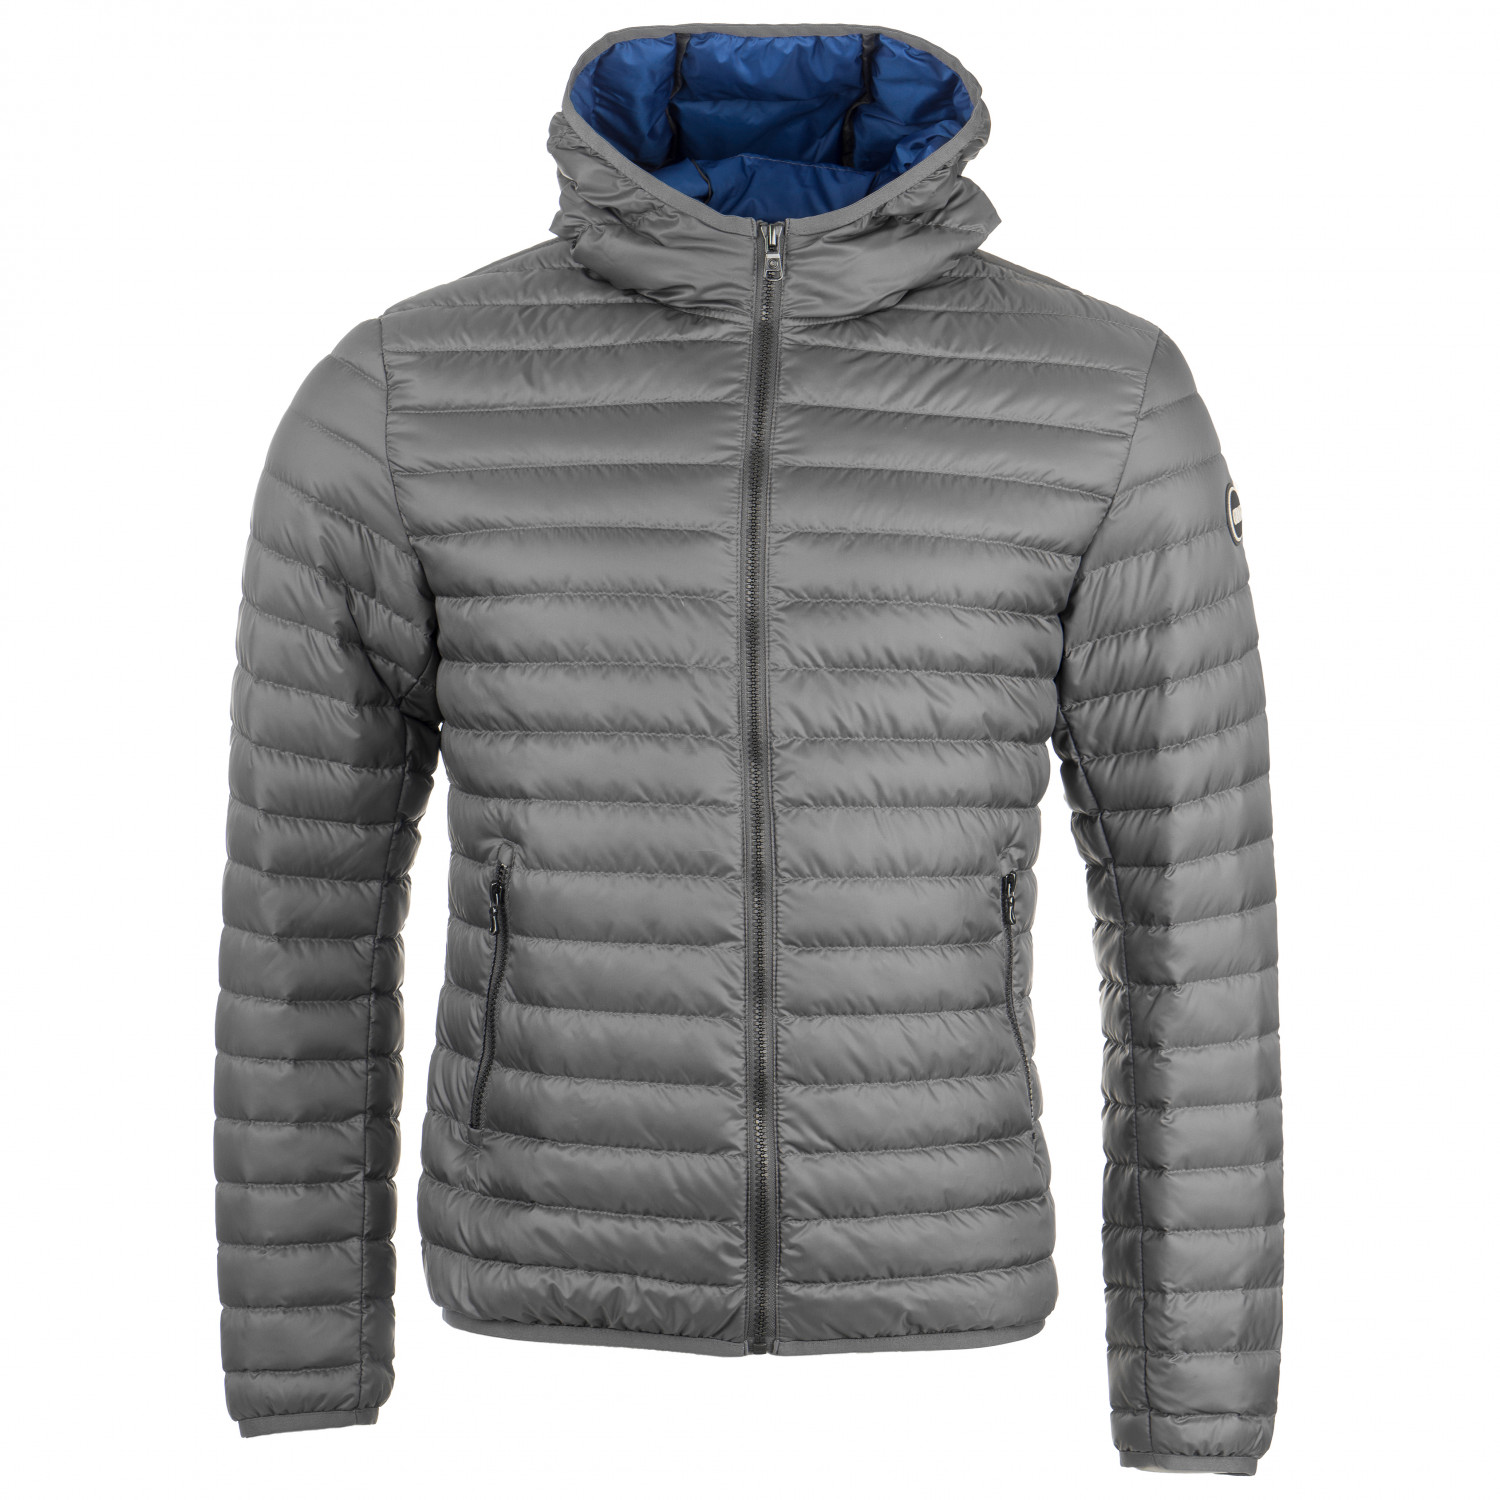 reputable site 87220 24d3f Colmar Originals Light Down Jacket Fixed Hood - Down Jacket ...